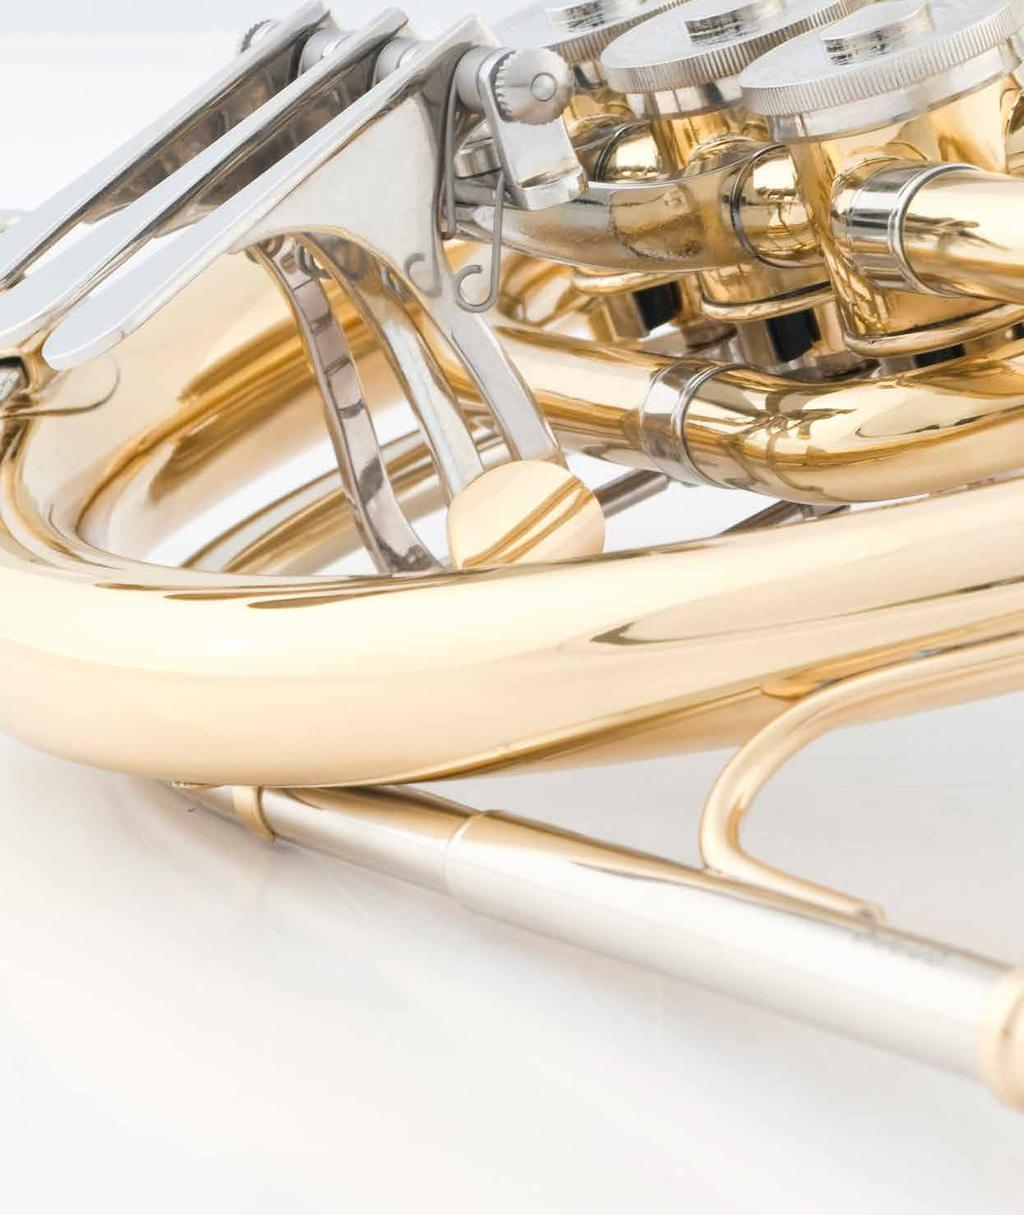 Alto Horns Reliable Arnolds & Sons Ath-300 Tenorhorn High Quality Materials